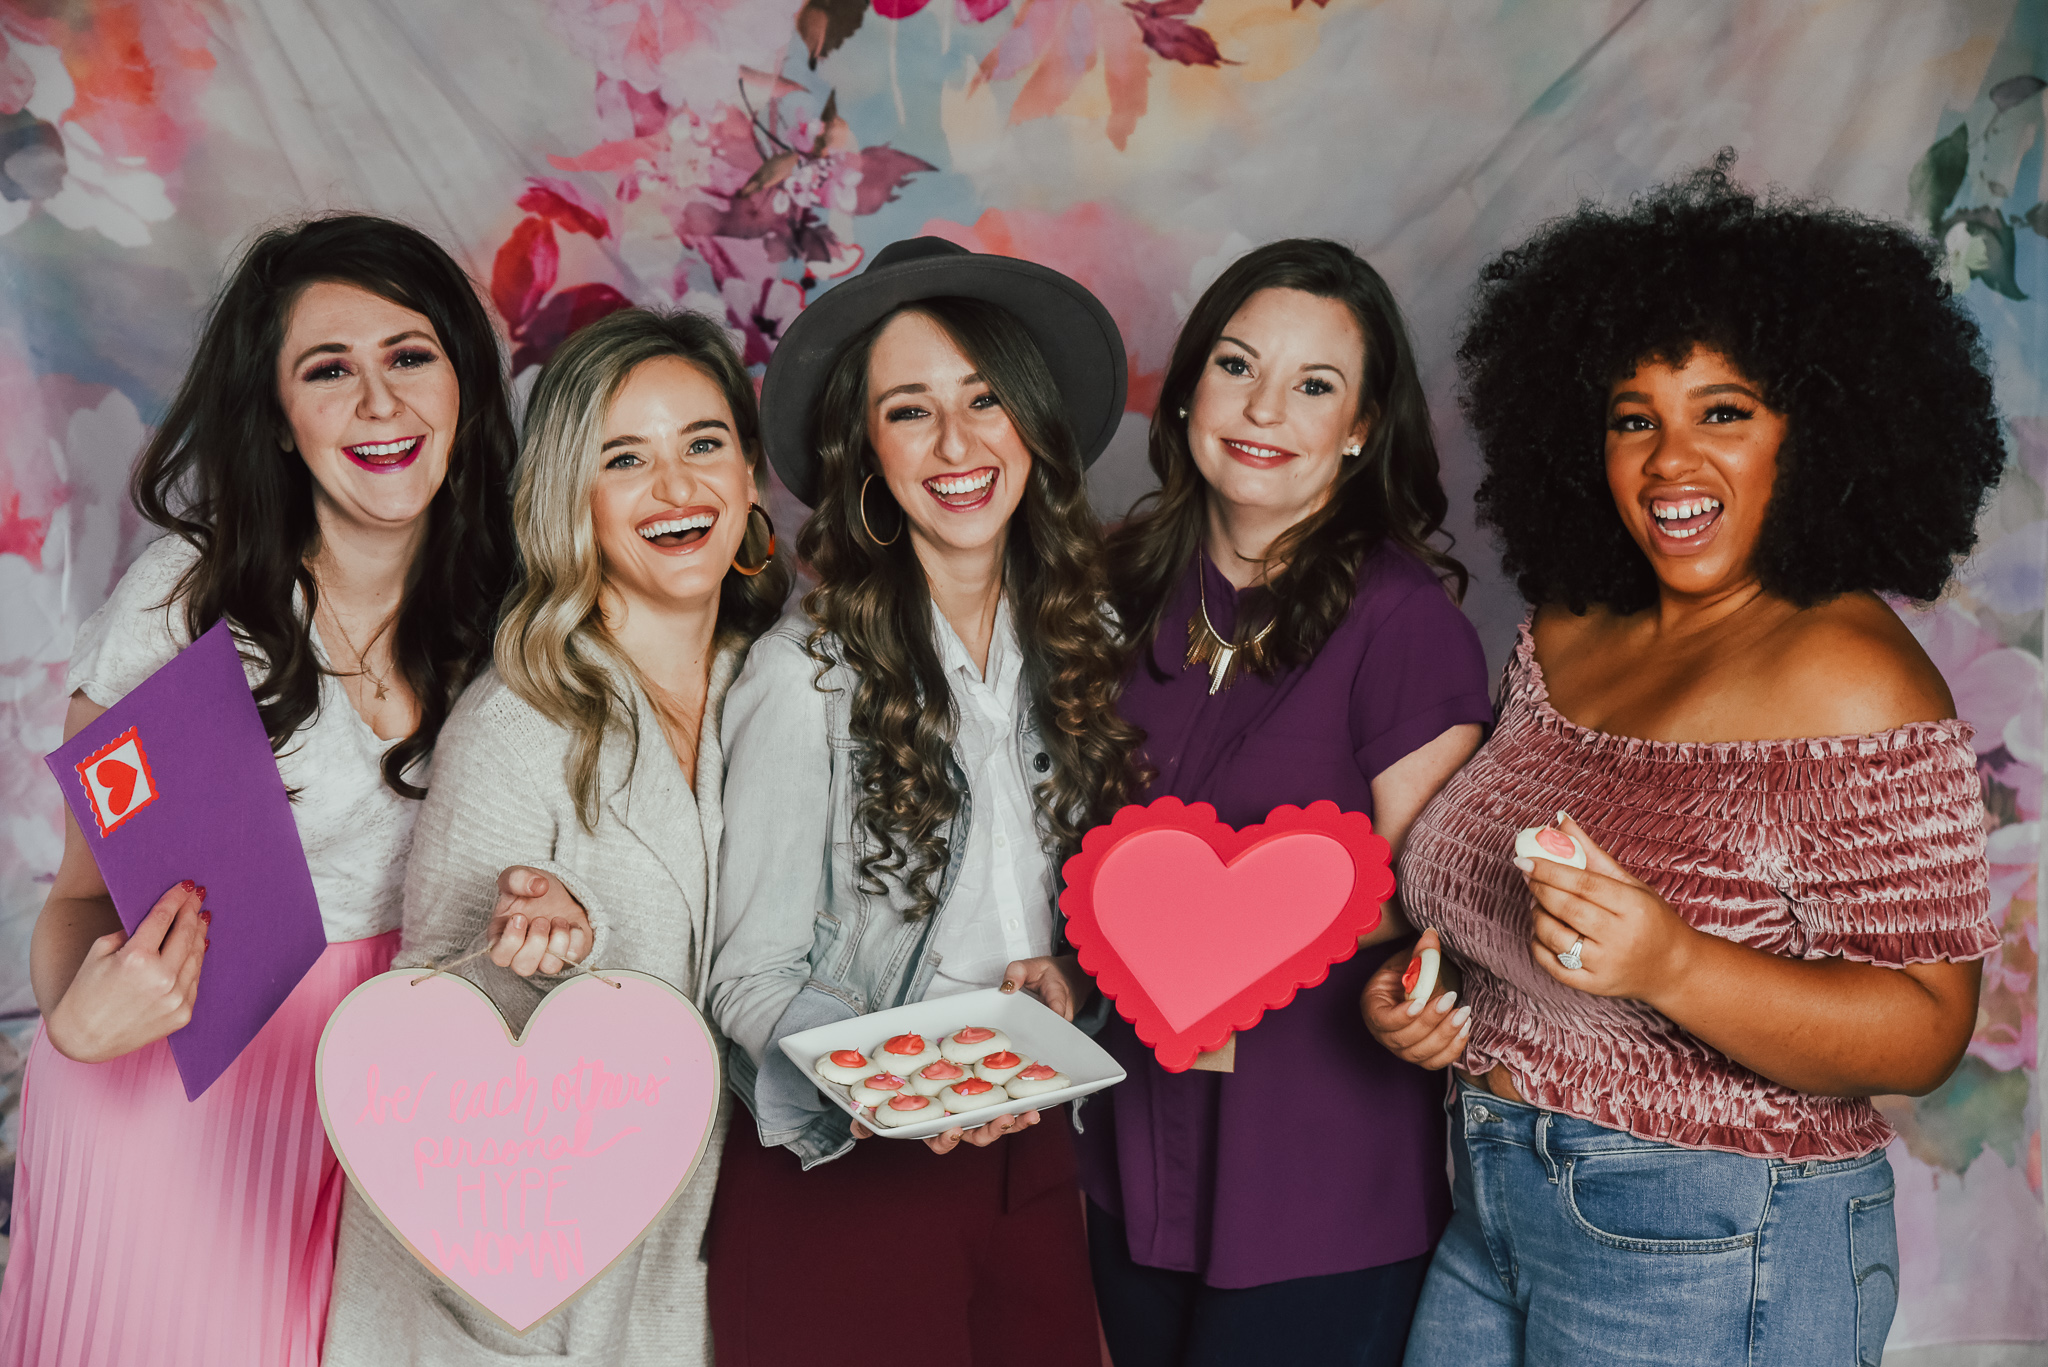 5-IDEAS-FOR-HOSTING-THE-ULTIMATE-GALENTINE'S-DAY-PARTY-2.jpg